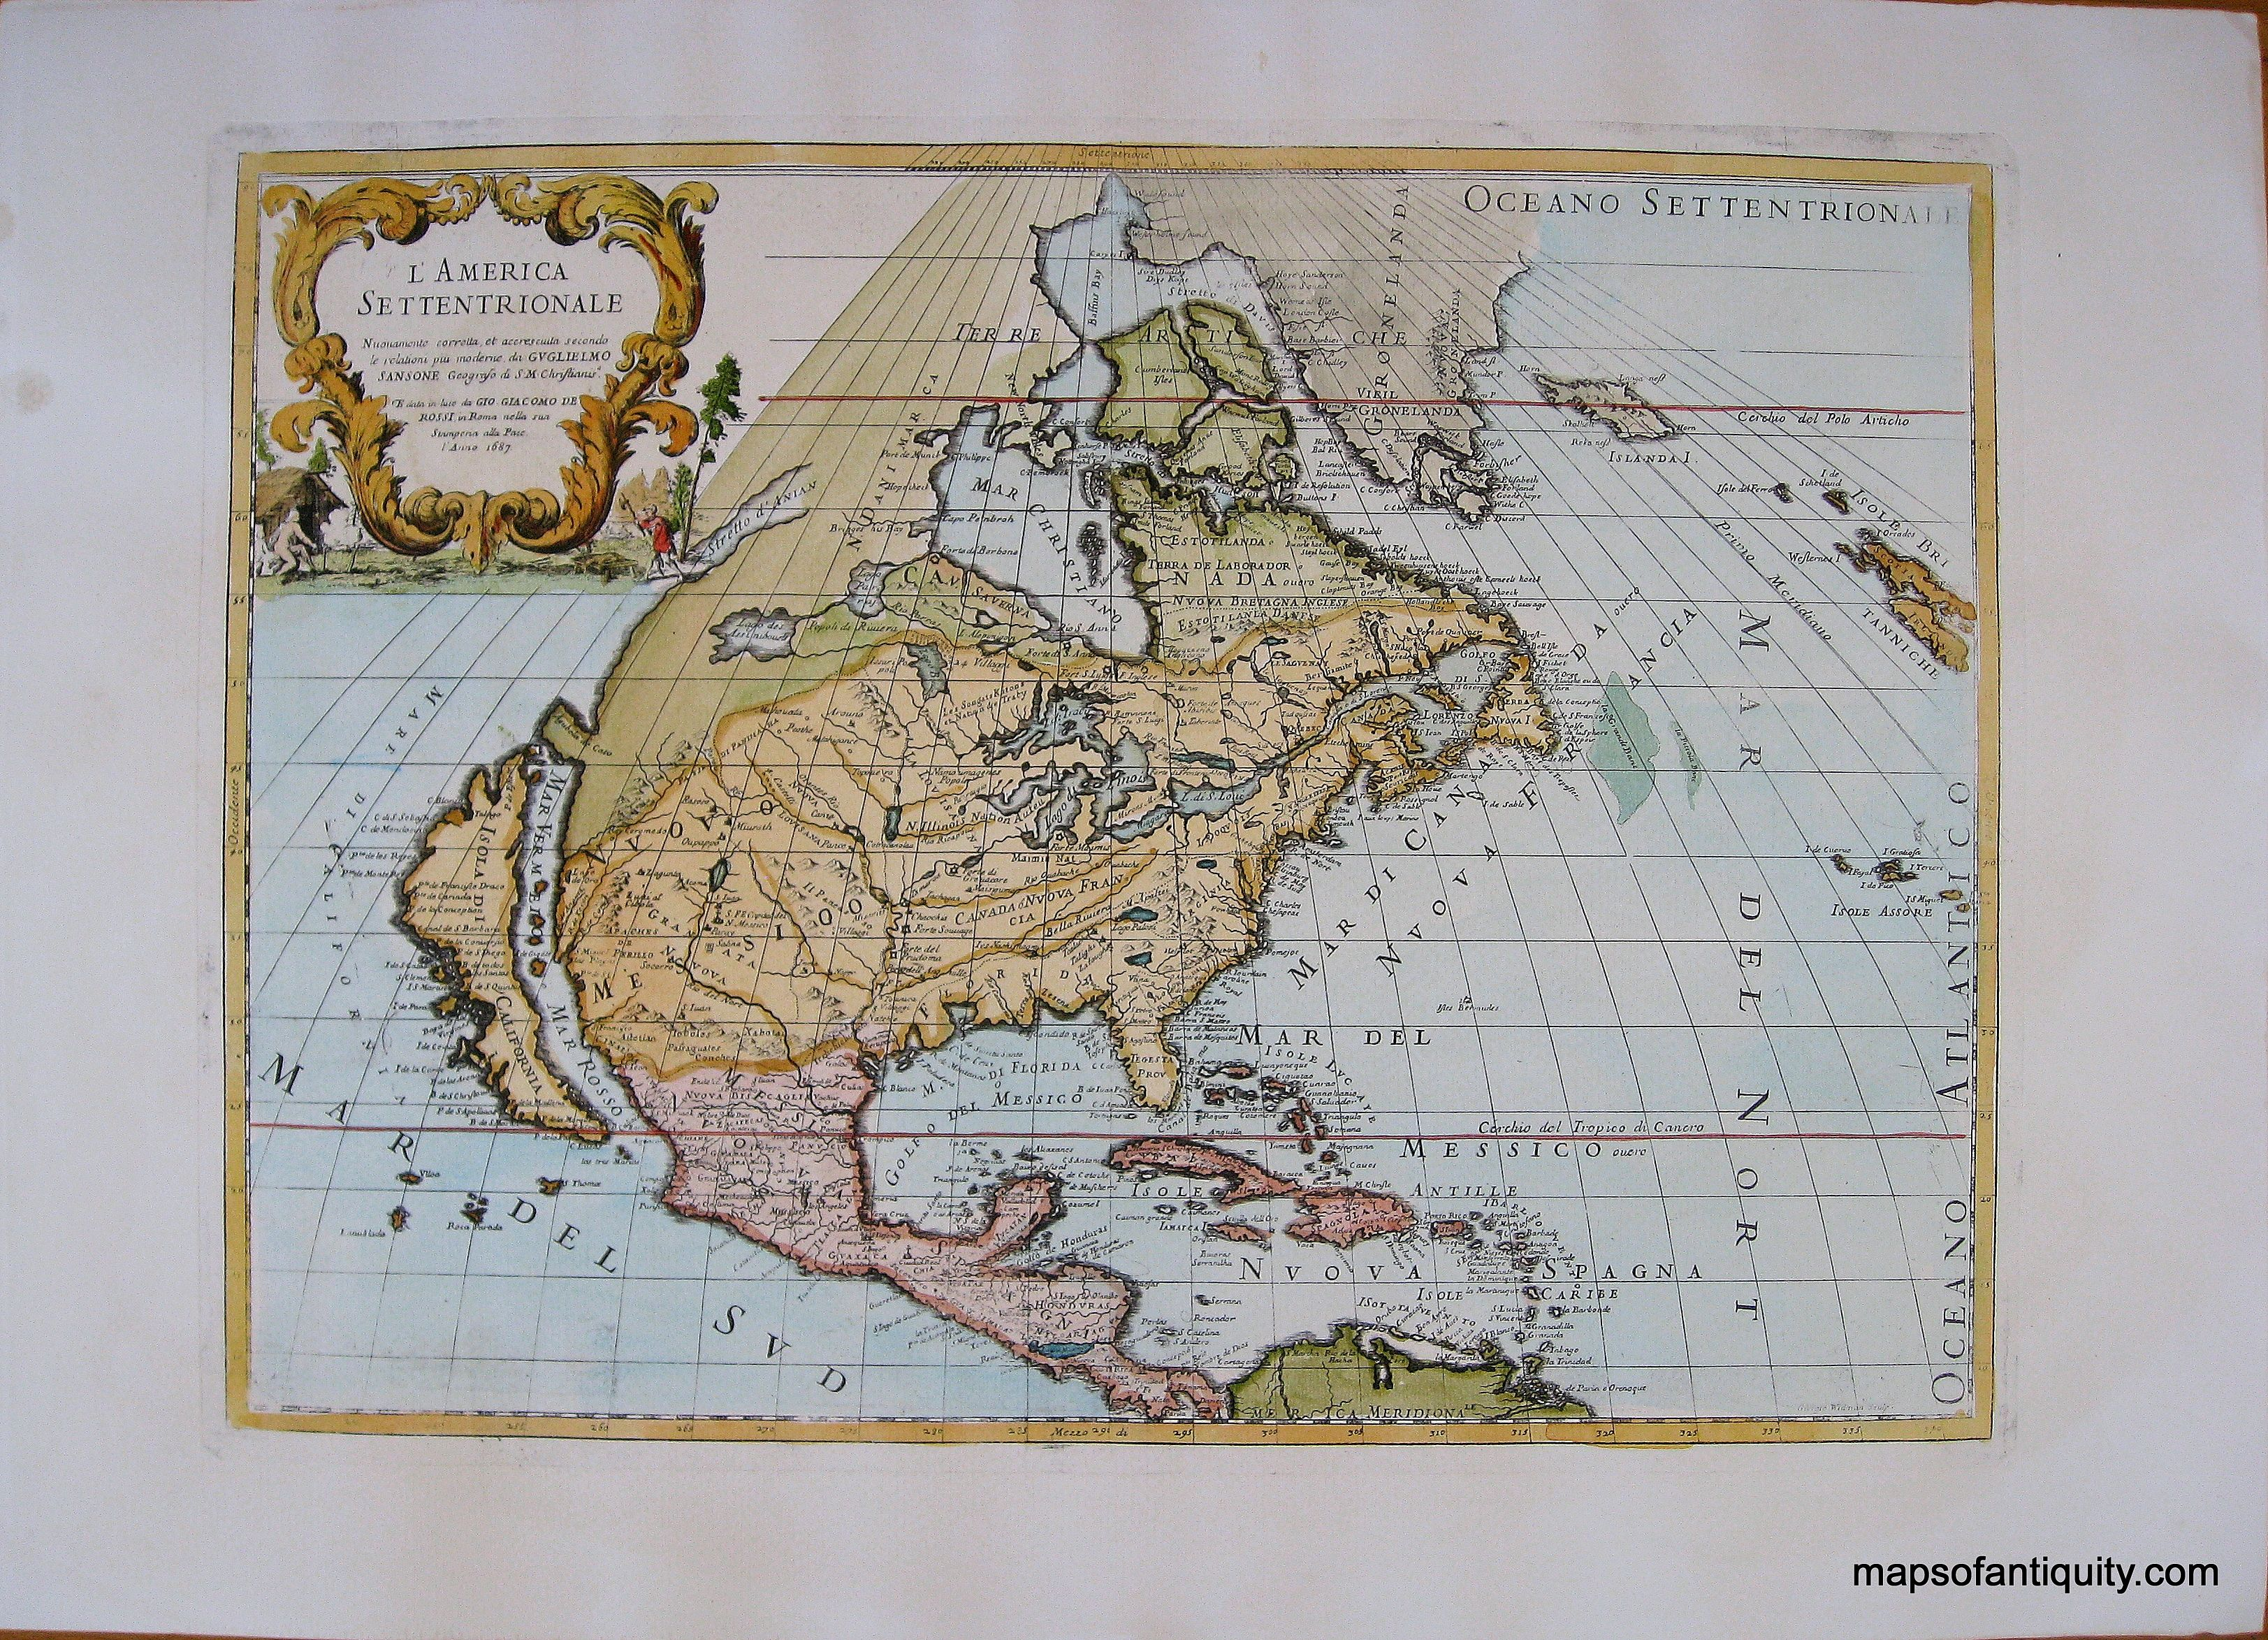 Reproduction of Antique Map showing California as an Island